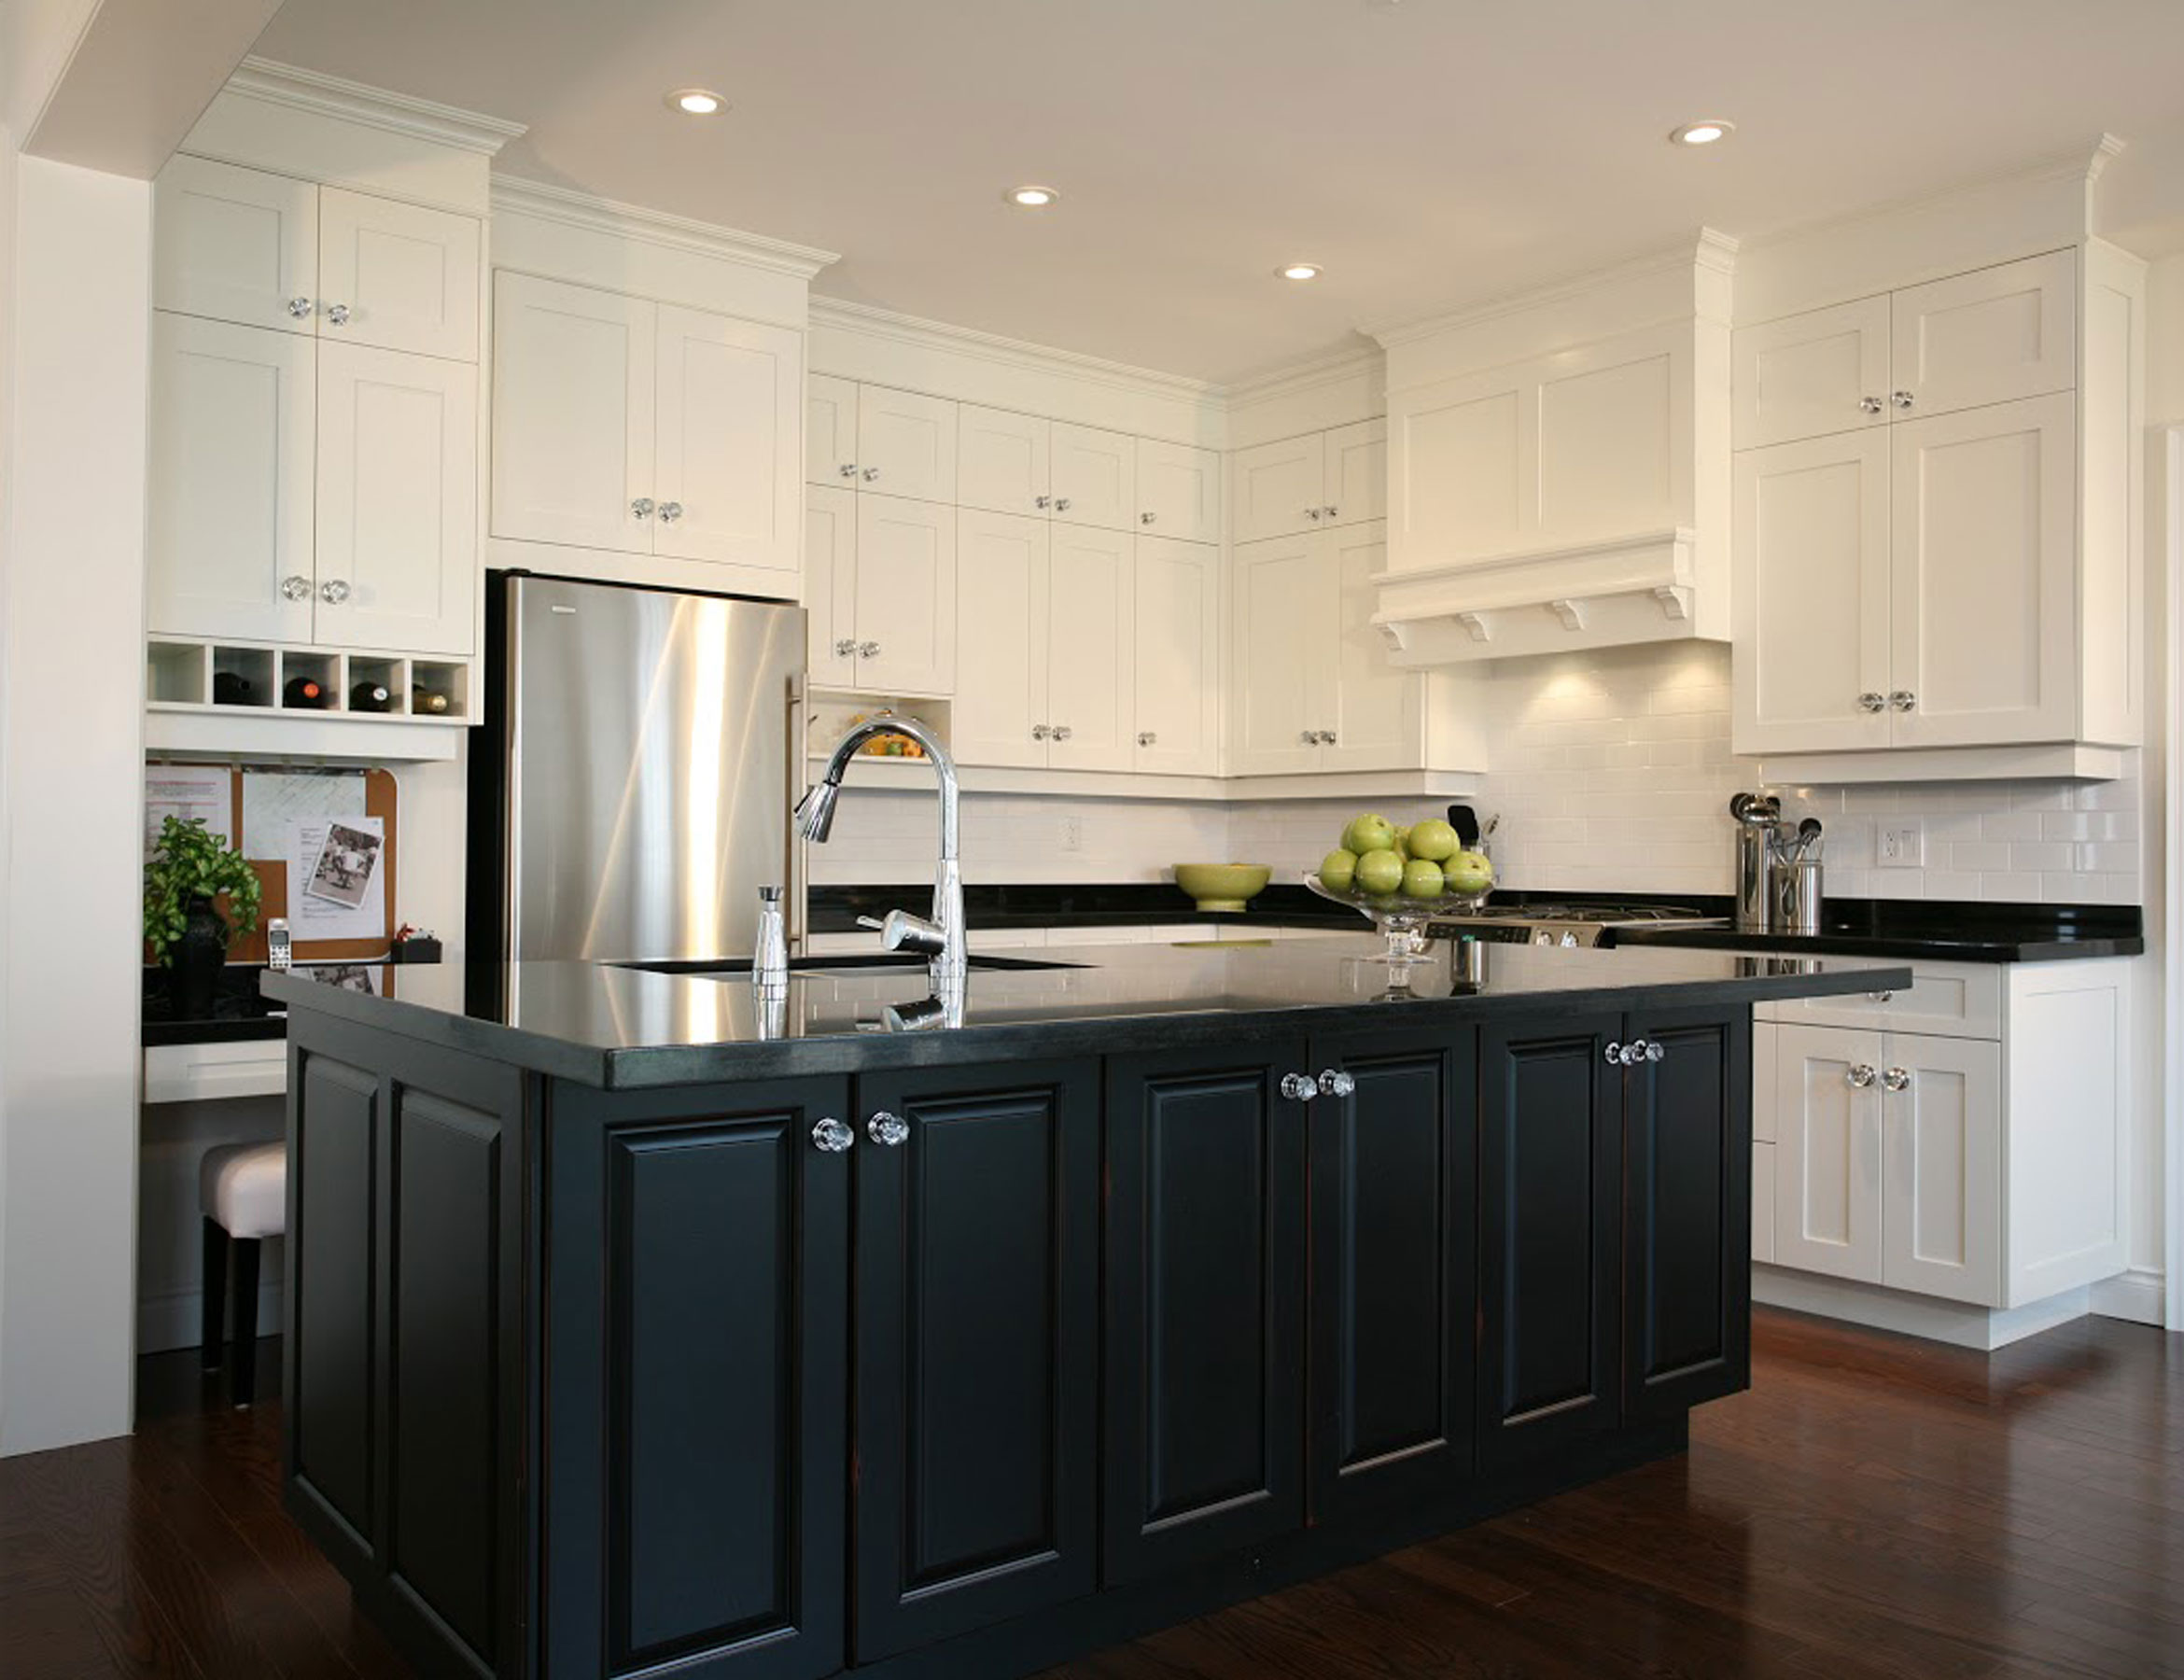 Custom kitchen cabinetry designers aurora newmarket - Payless kitchen cabinets ...